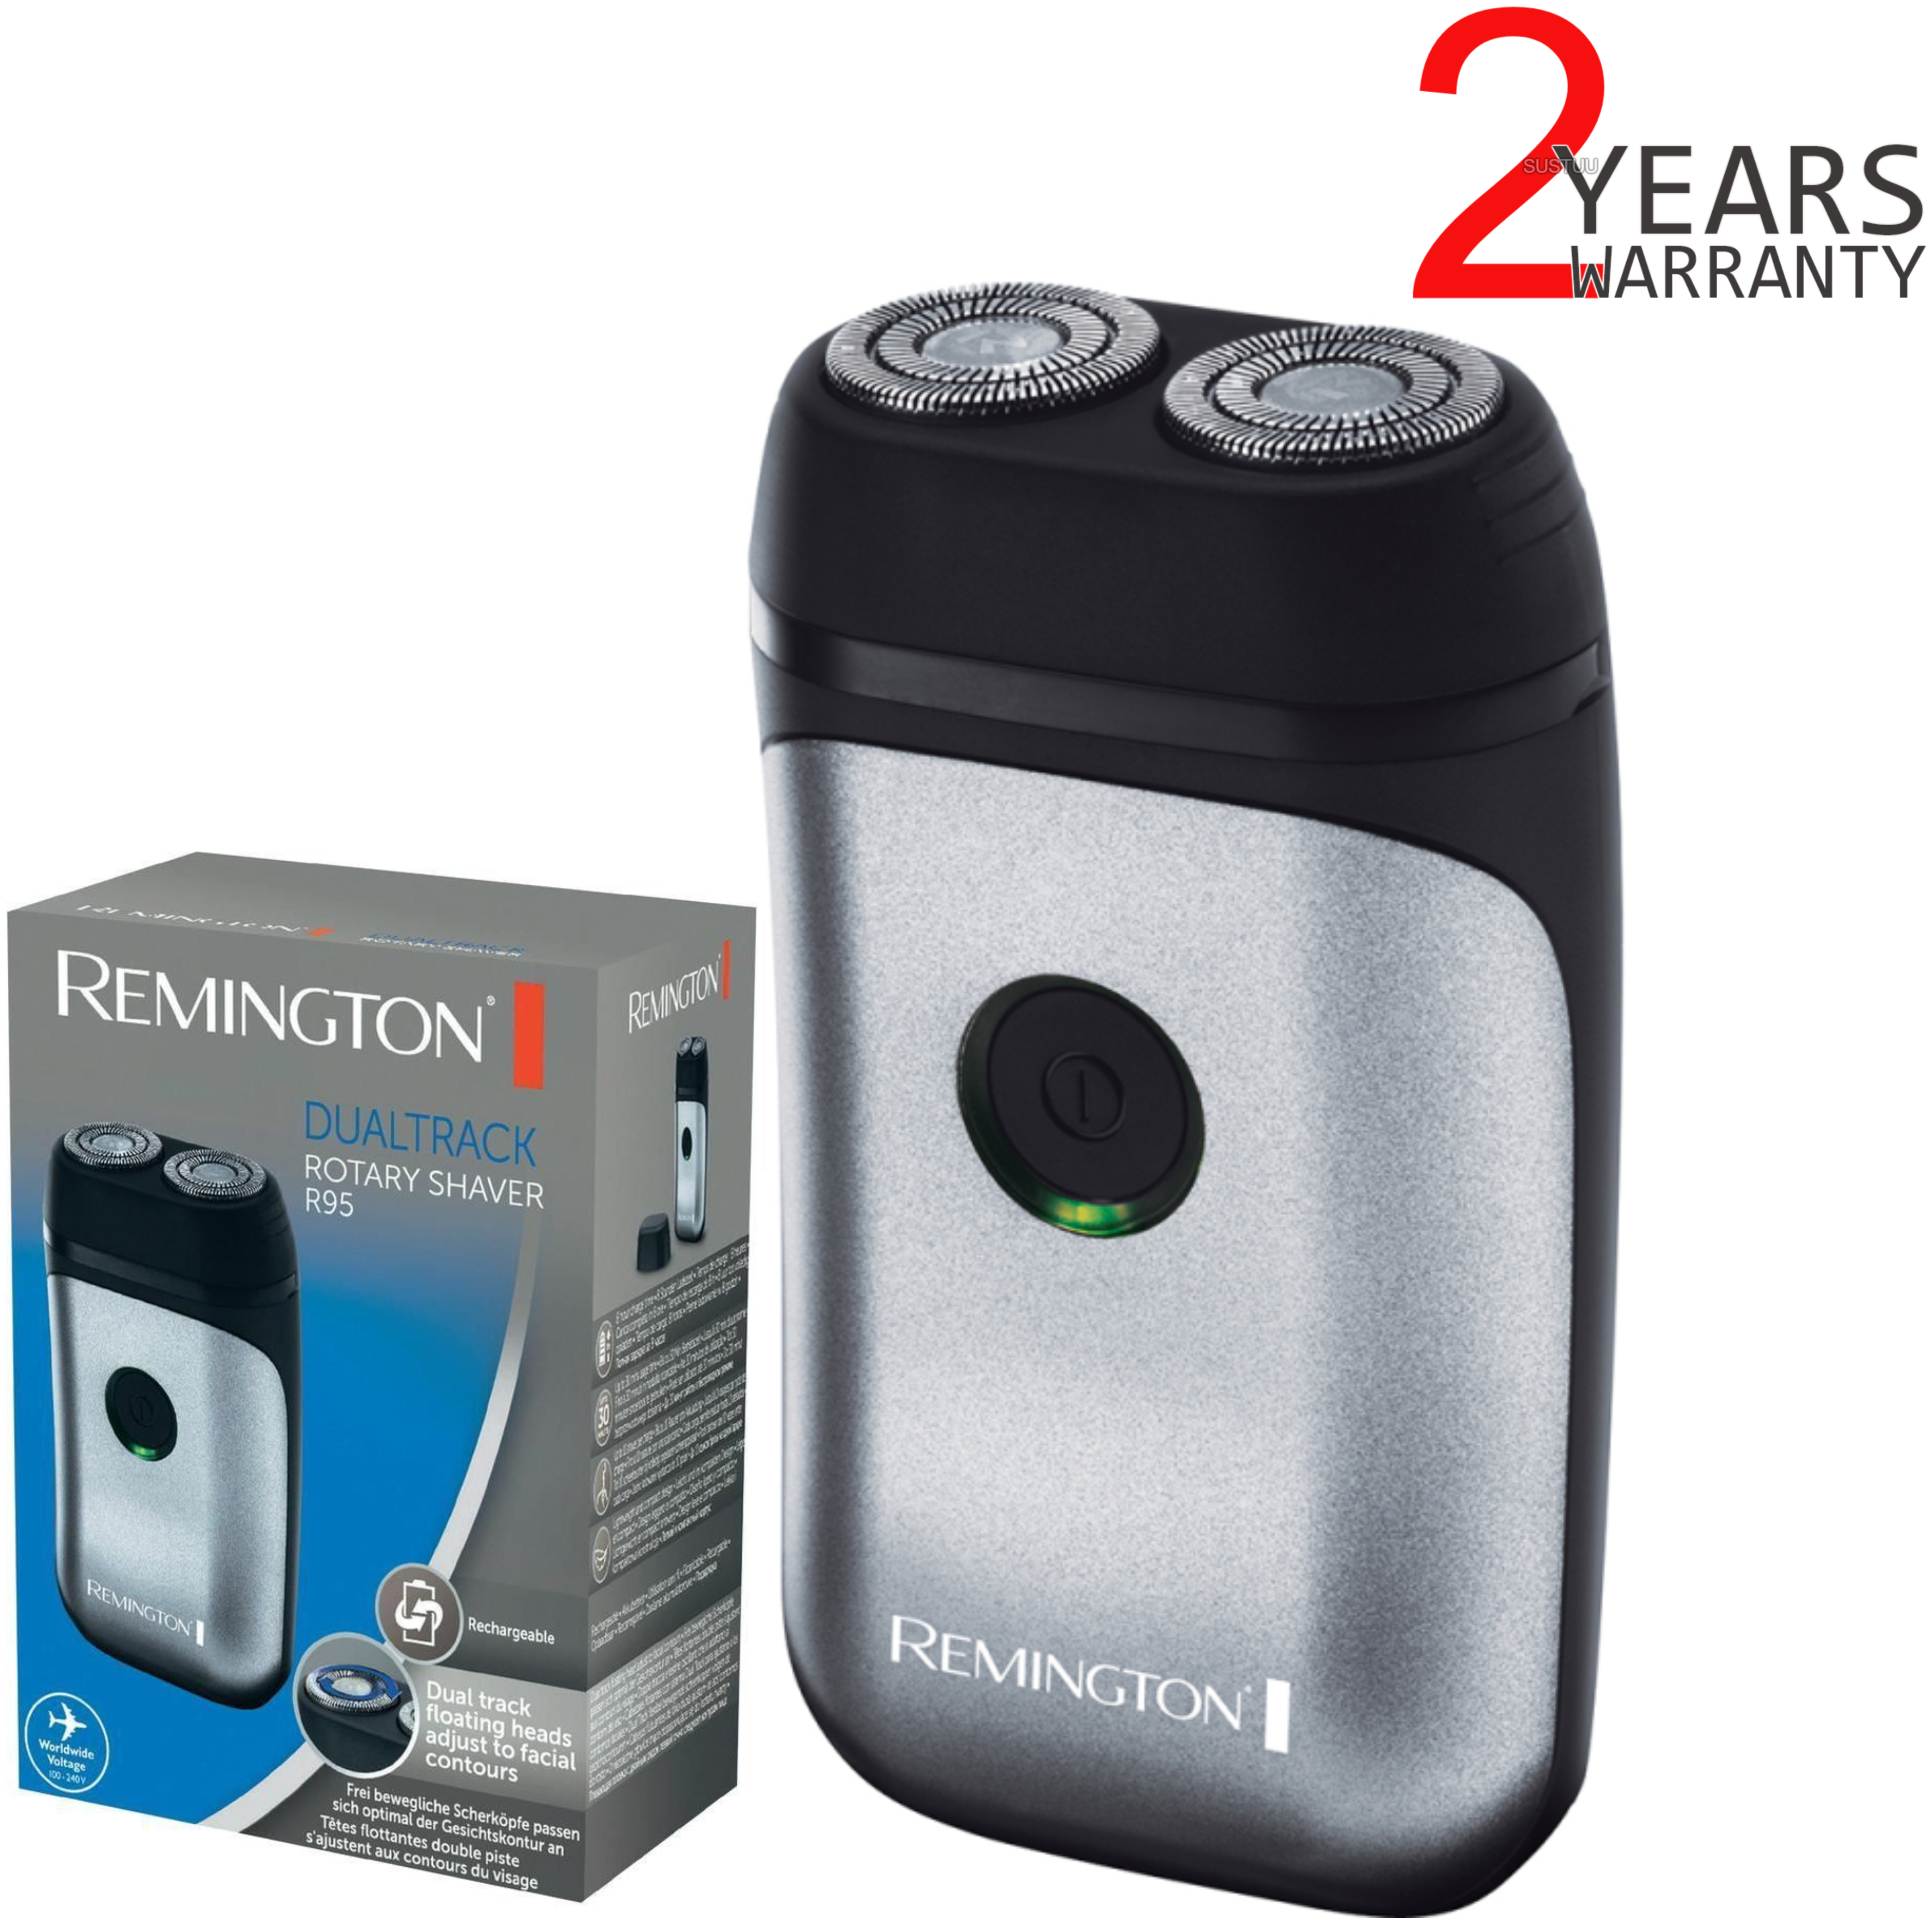 Remington R95 Dual Track Rotary Rechargeable Mini Electric Men's Shaver | Compact